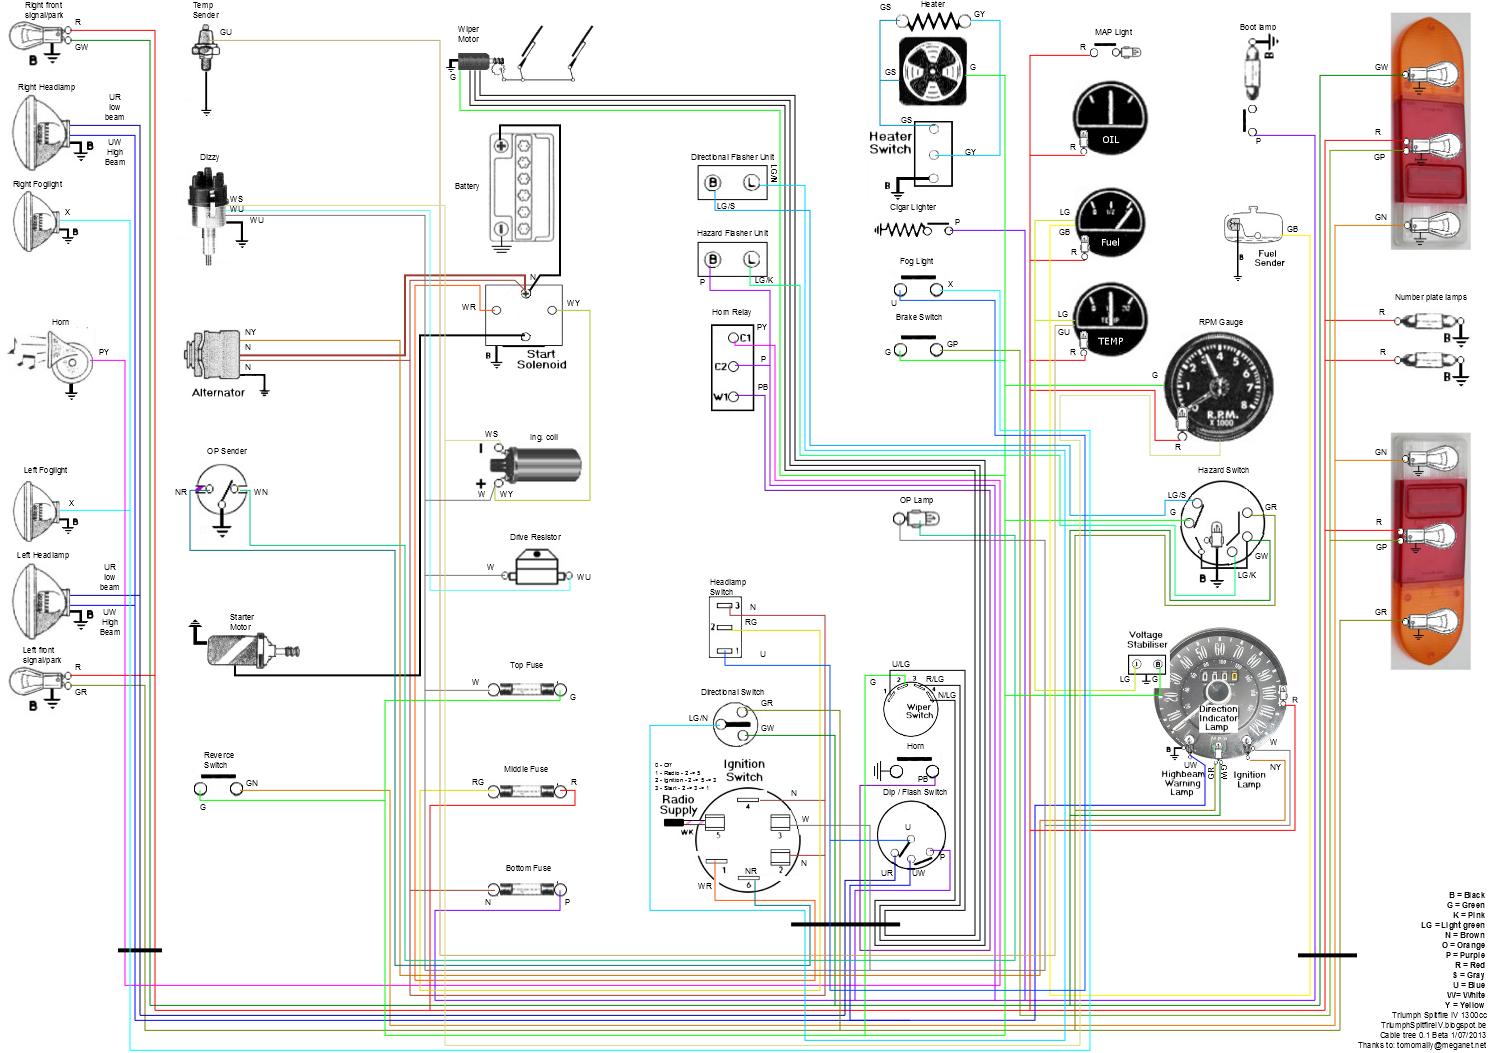 Wiring Diagram Triumph Spitfire Mk1 - Wiring Diagram Update on triumph stag interior, triumph stag rear end, triumph stag dash, triumph stag engine swap, triumph stag motor, triumph stag engine conversion, triumph stag wheels,